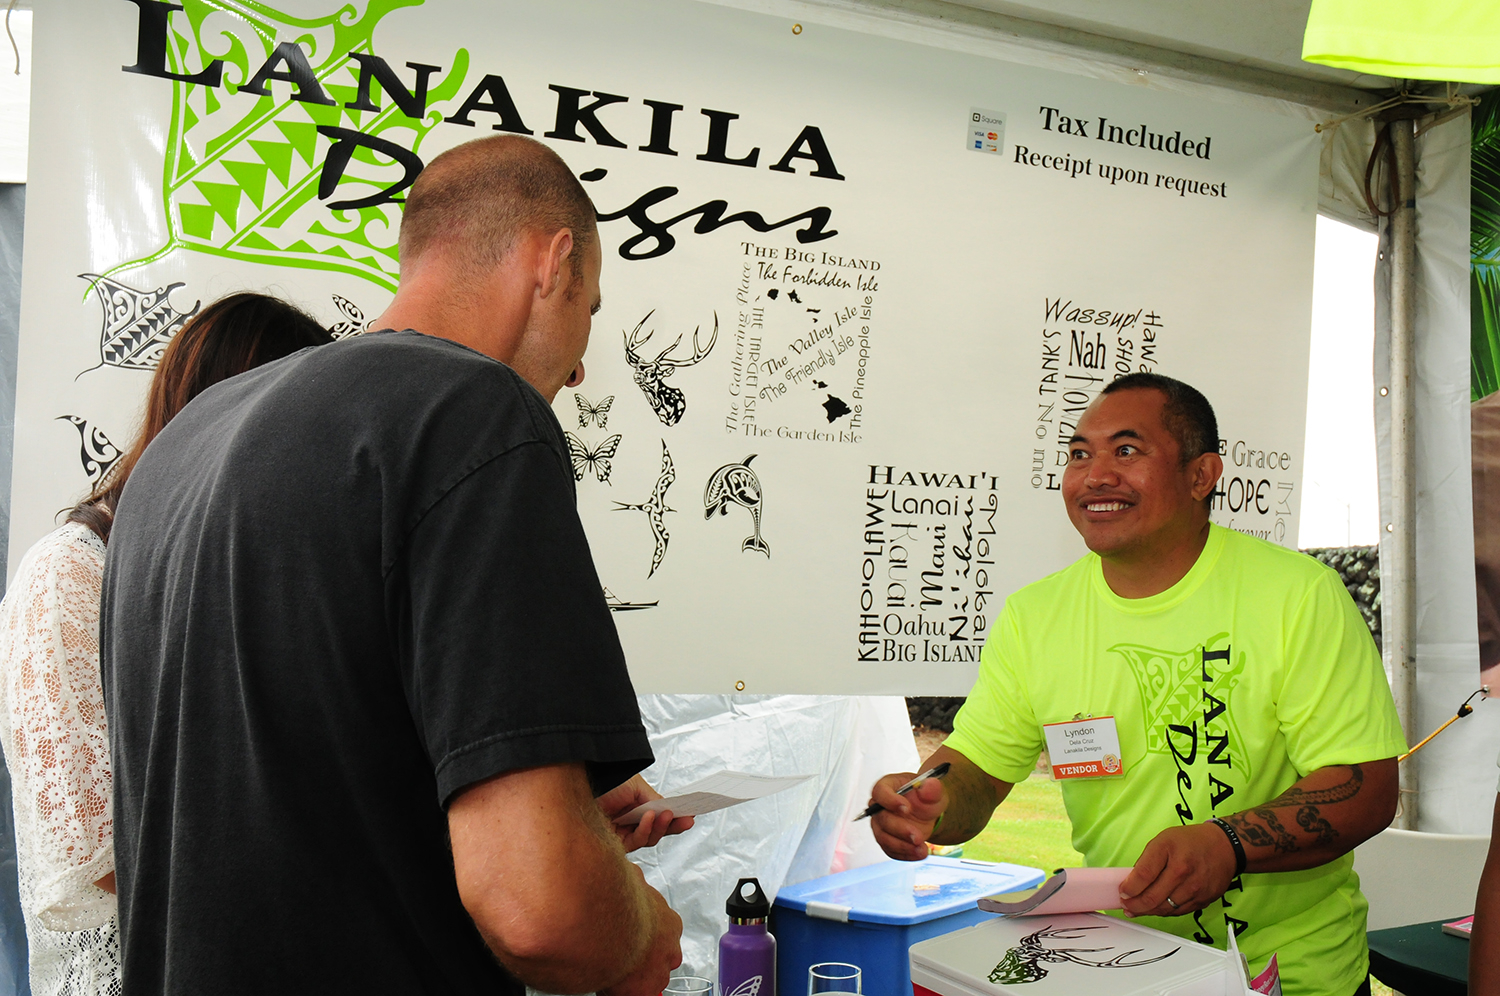 """The Biggest benefit to our business was to get exposure and get our name out there. We loved it and can't wait till next year."" - Lyndon Dela Cruz, owner of Lanakila Designs on Molokai"